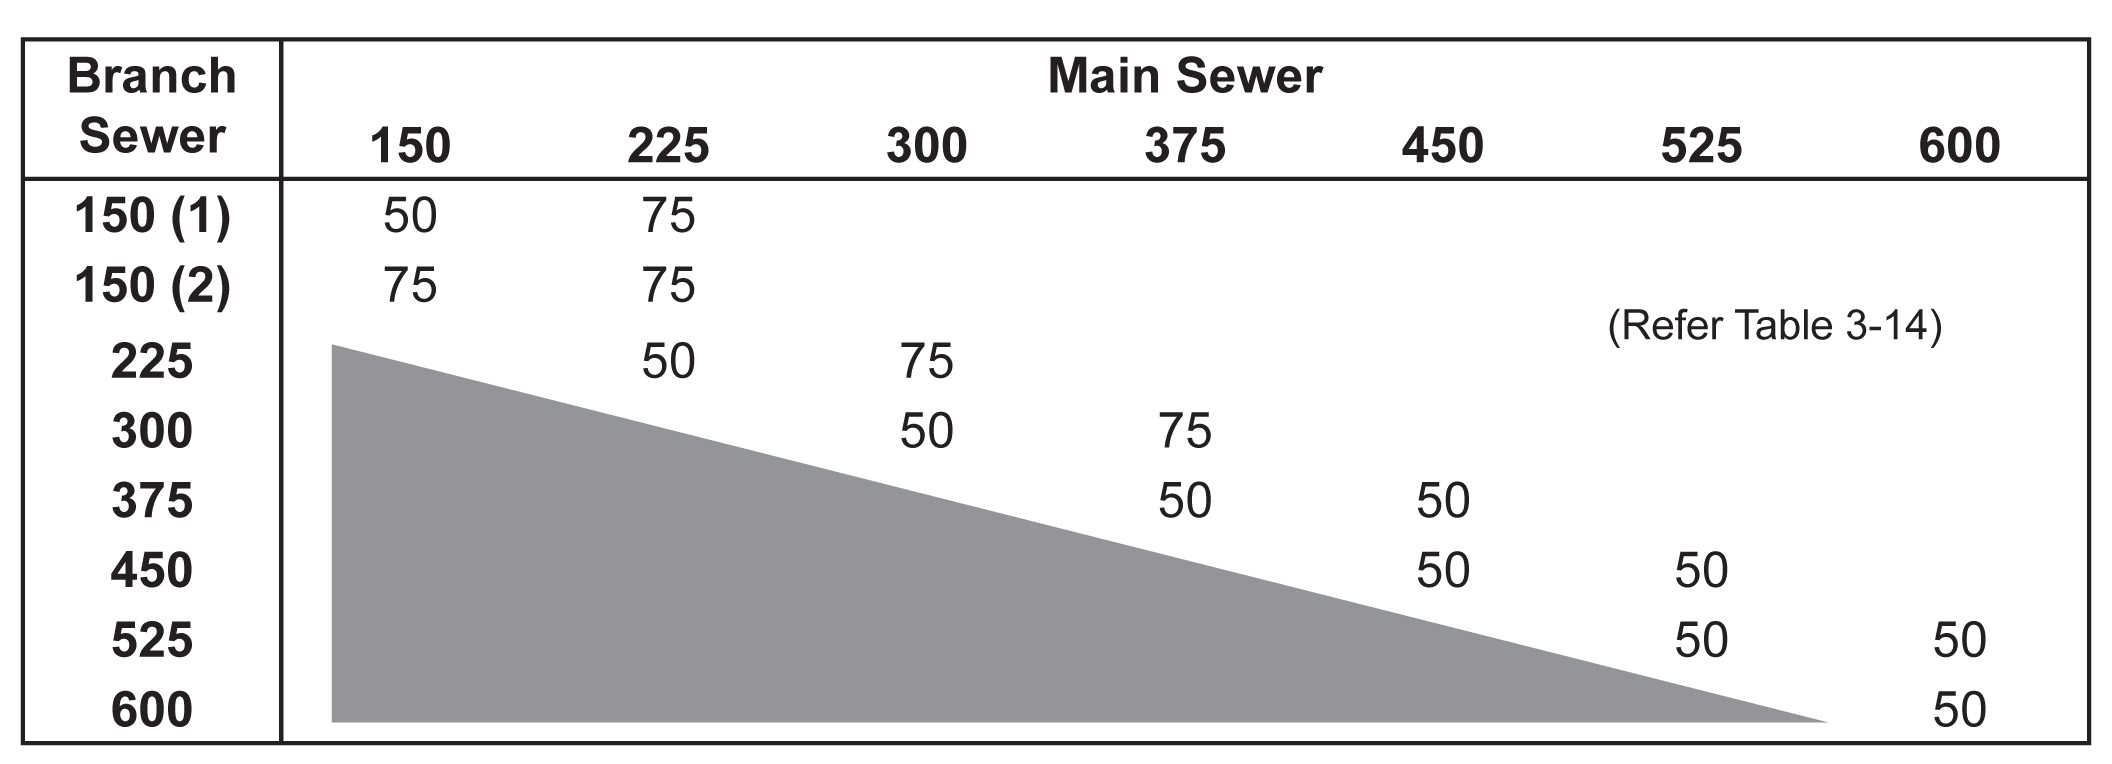 Main sewer table 3-15